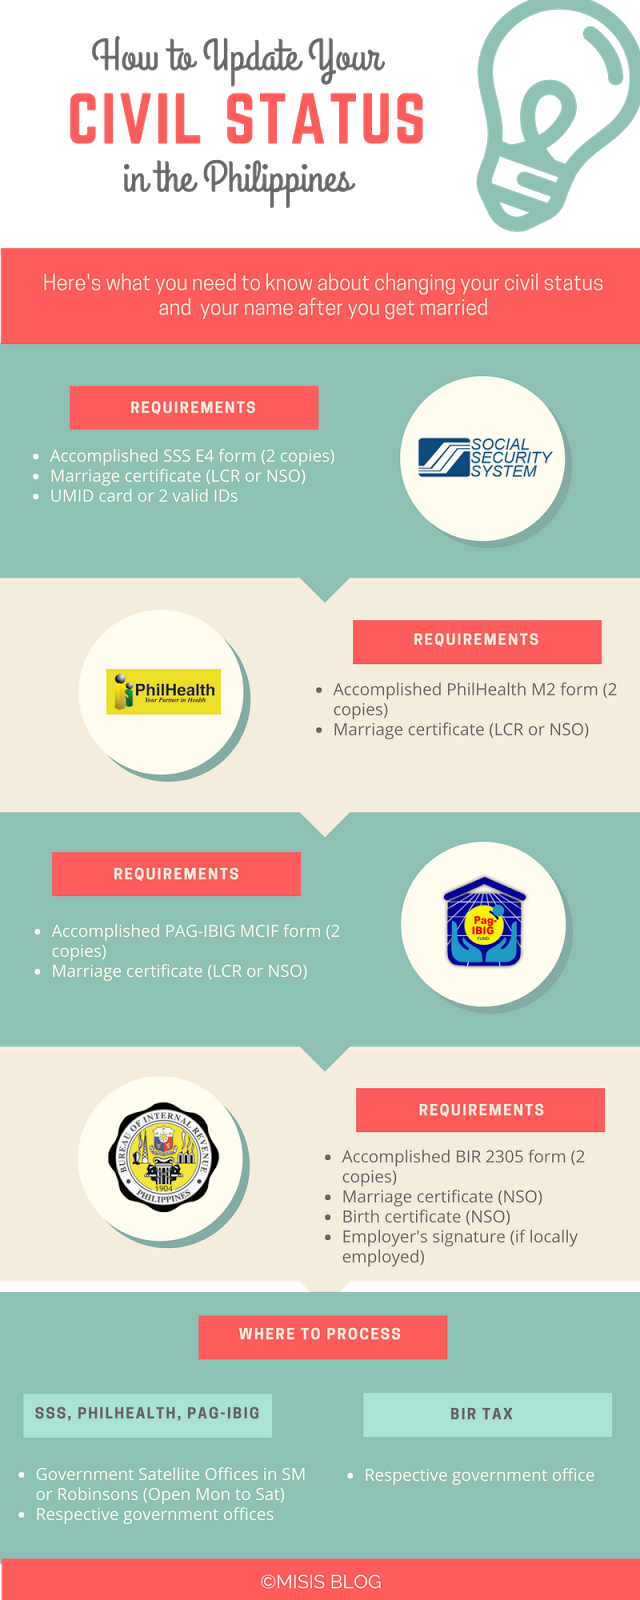 How to update your civil status in the philippines infographic update civil status philippines aiddatafo Gallery